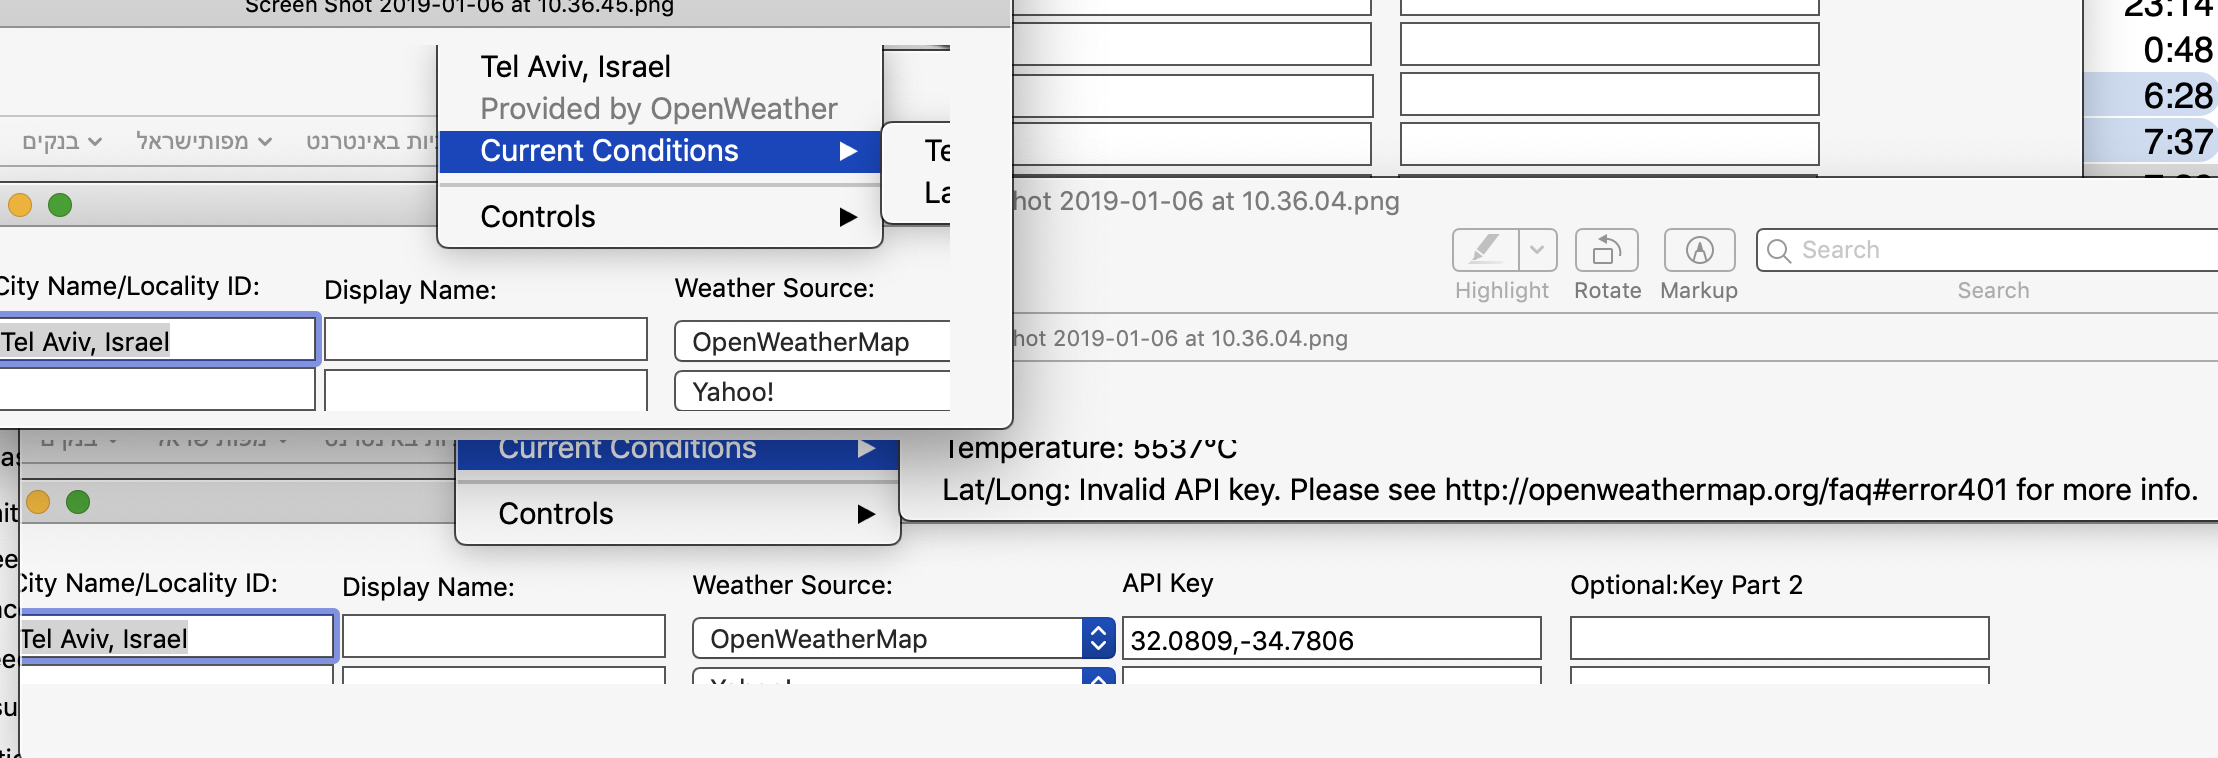 Meteorologist / Discussion / Help: Yahoo Weather API retired